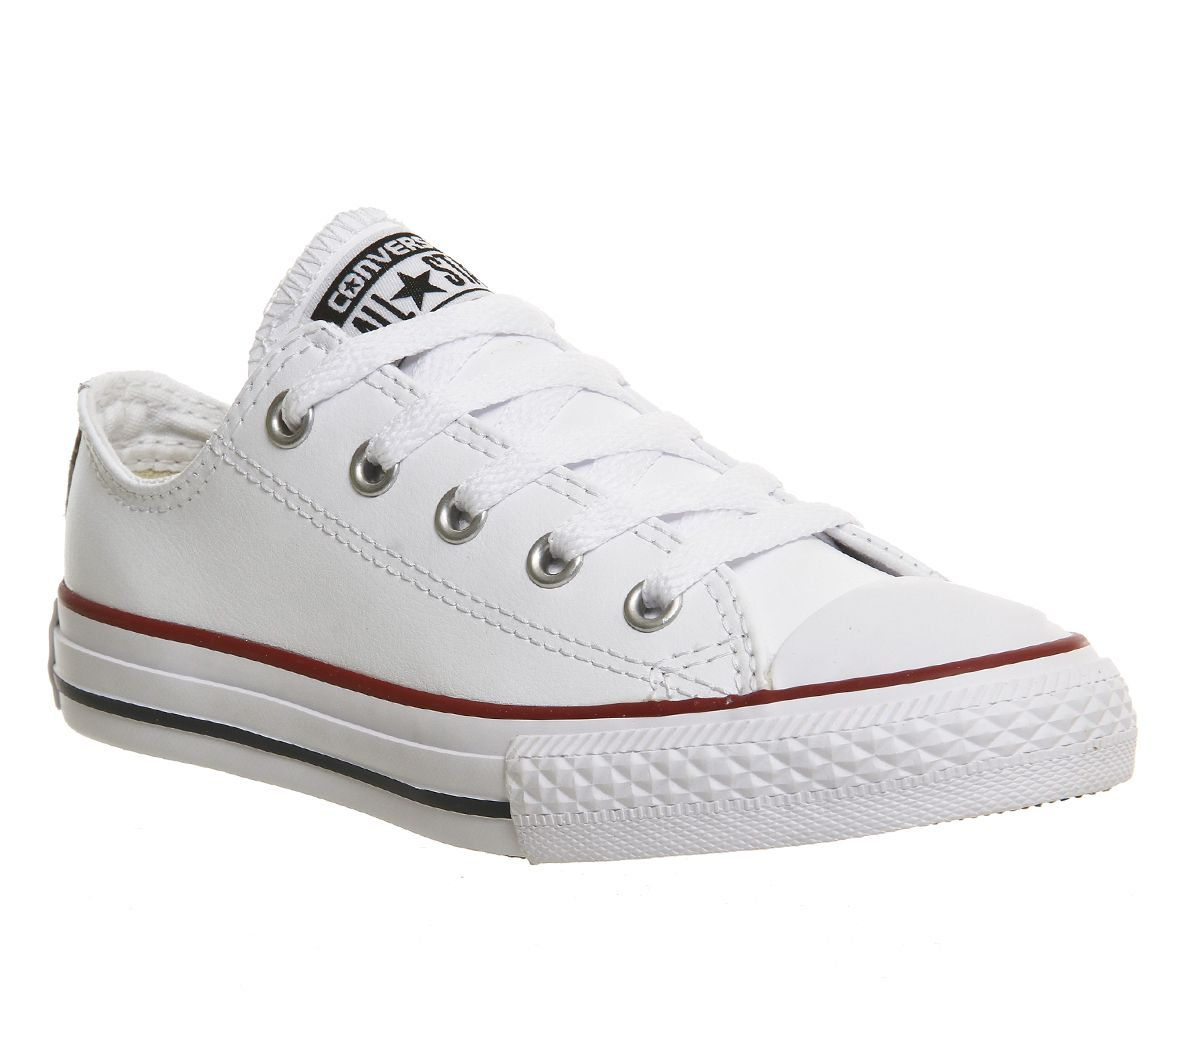 Kids-Converse-All-Star-Low-Youth-OPTICAL-WHITE-LEATHER-EXCLUSIVE-Kids